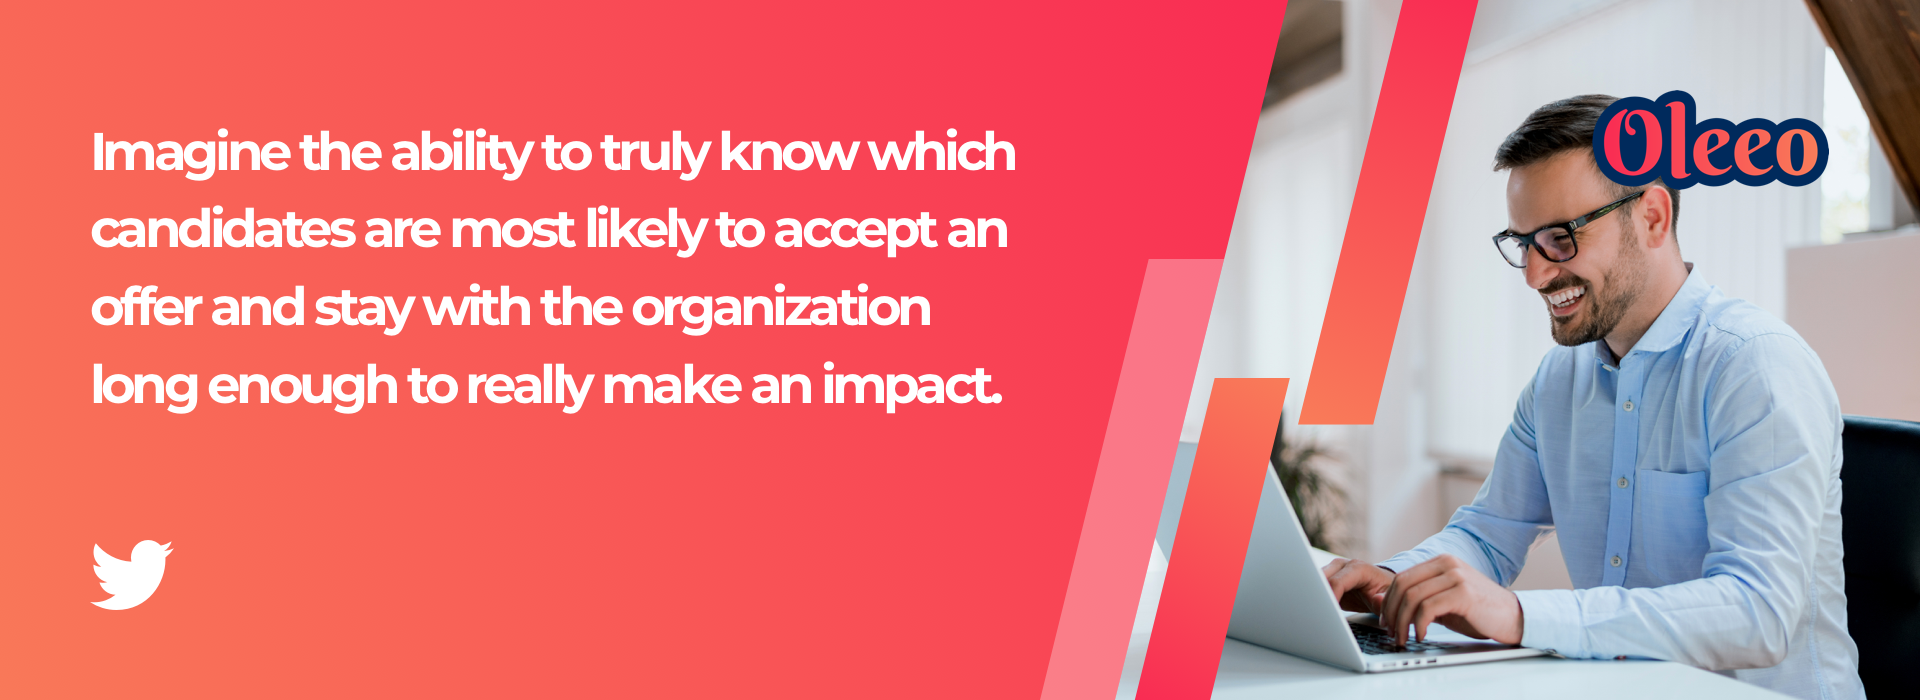 Imagine the ability to truly know which candidates are most likely to accept an offer and stay with the organization long enough to really make an impact.